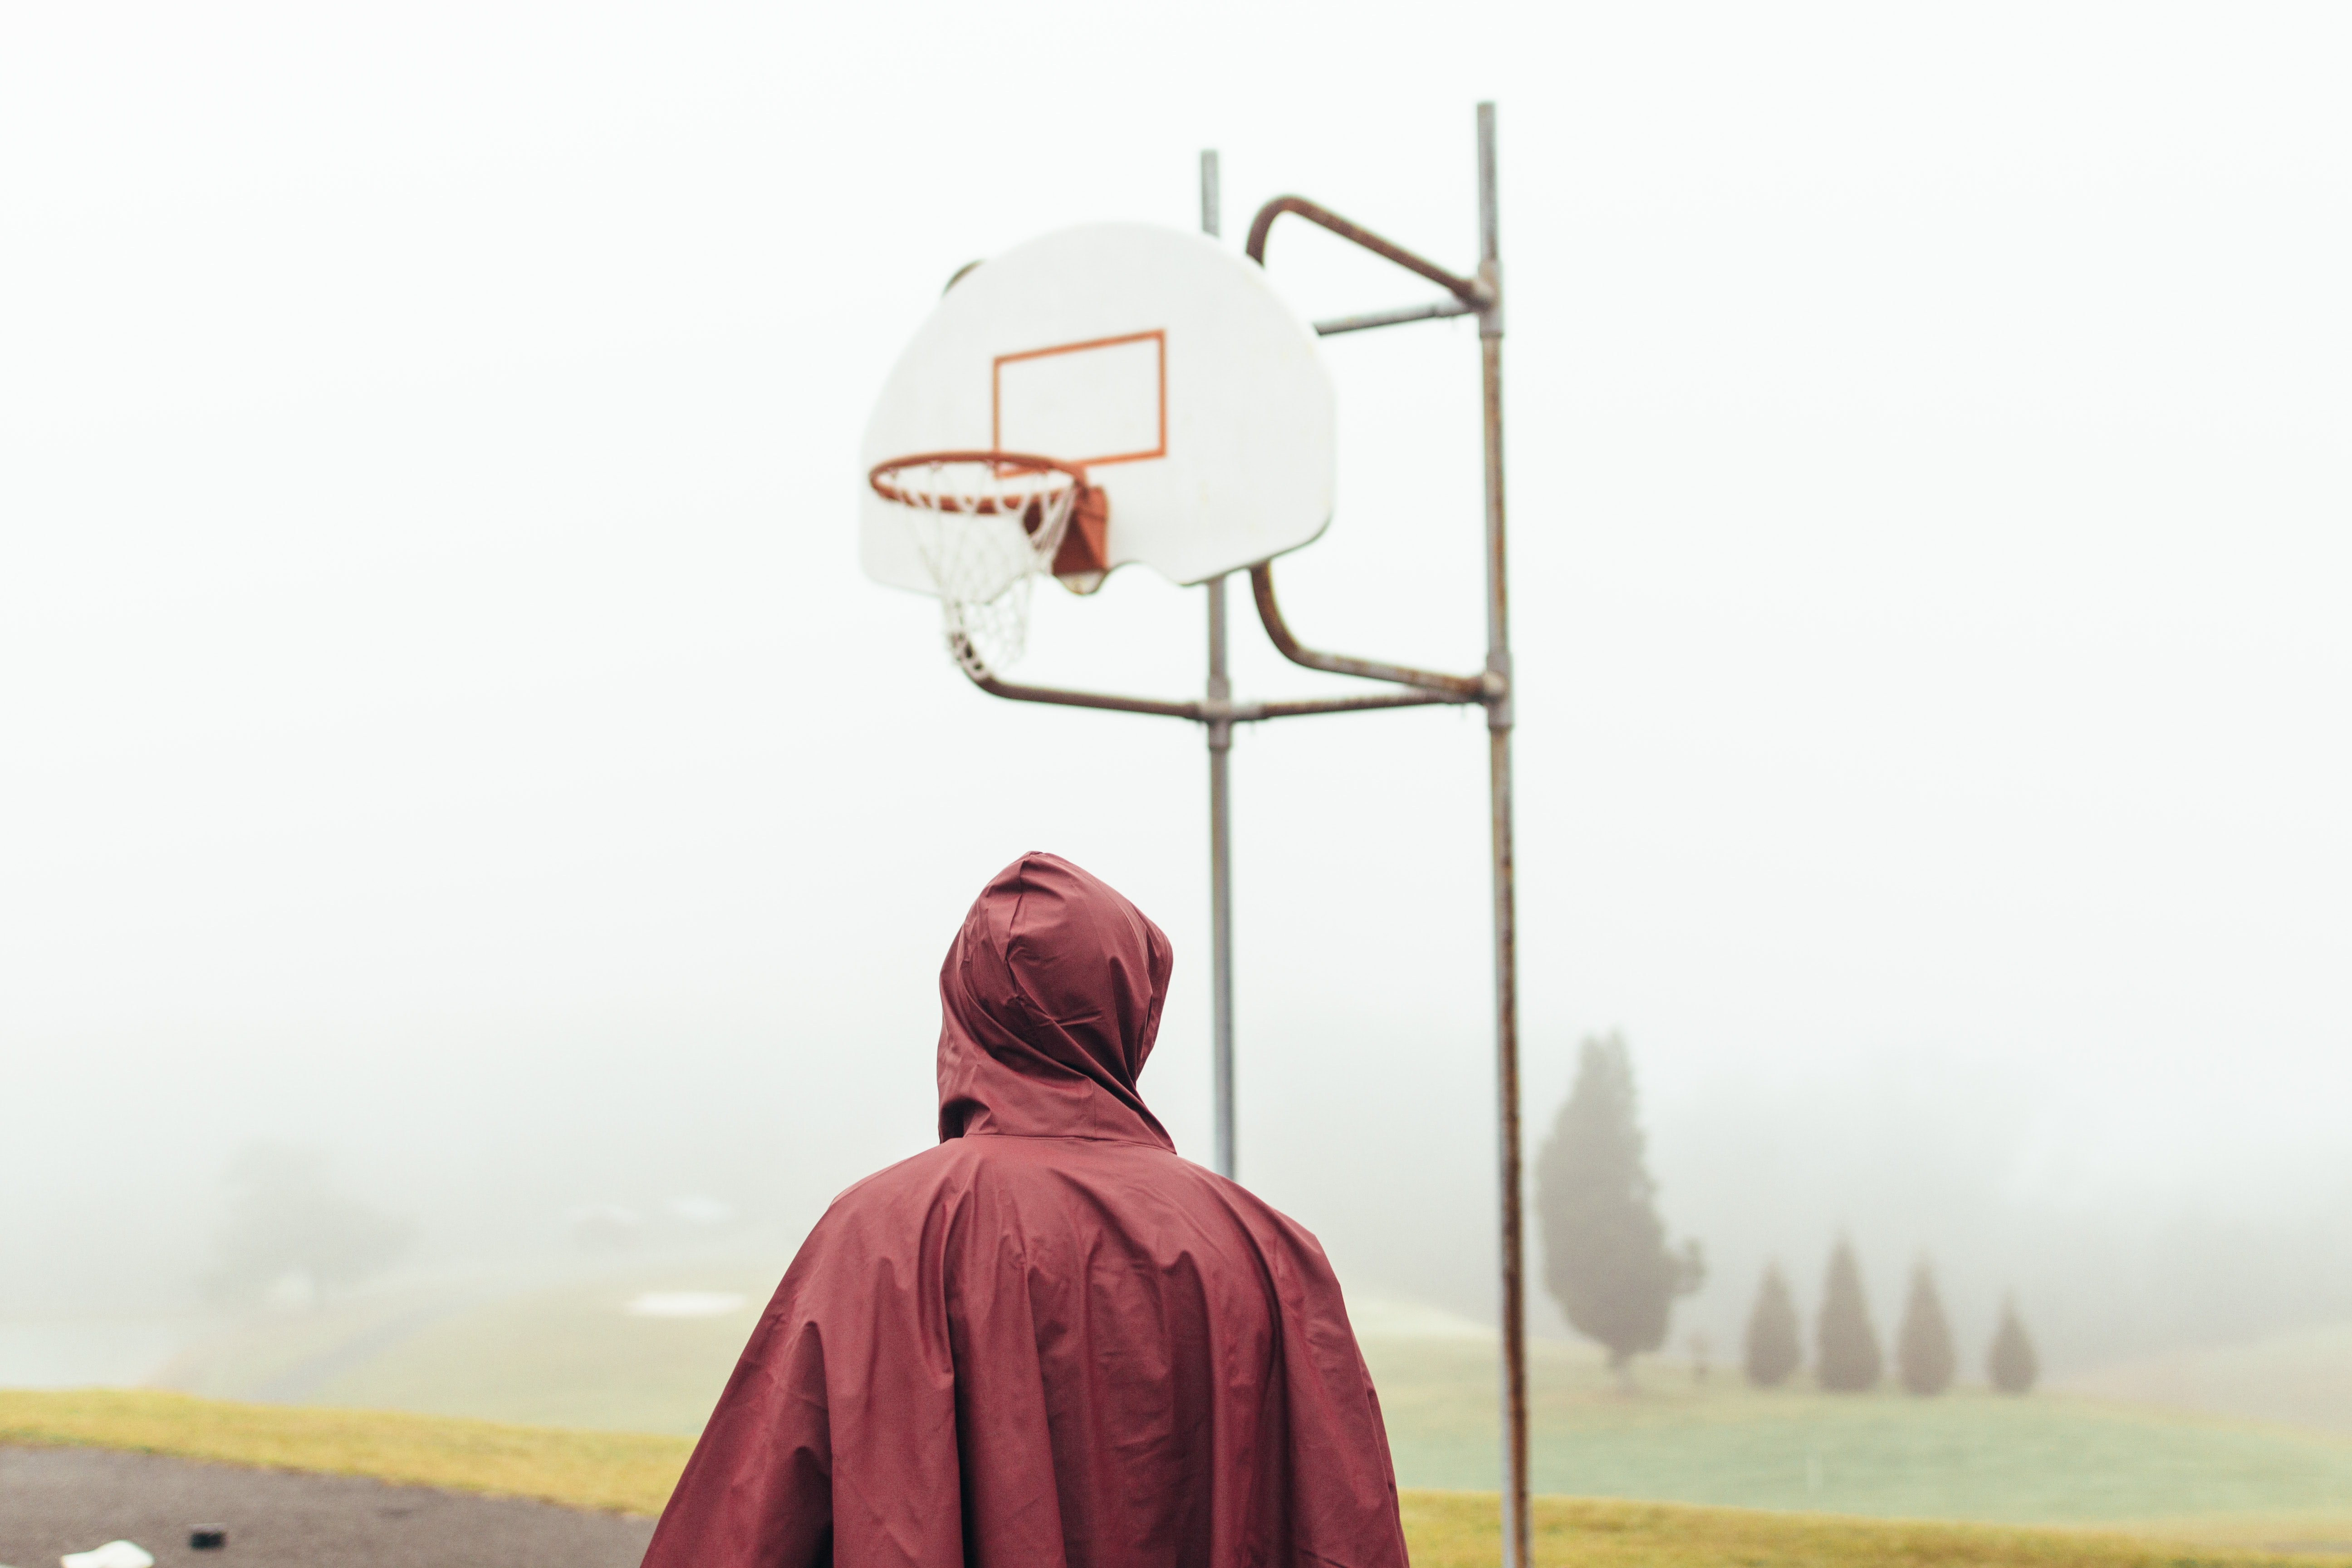 A man standing on an outdoor basketball court while wearing a jacket on a misty day in Pembroke